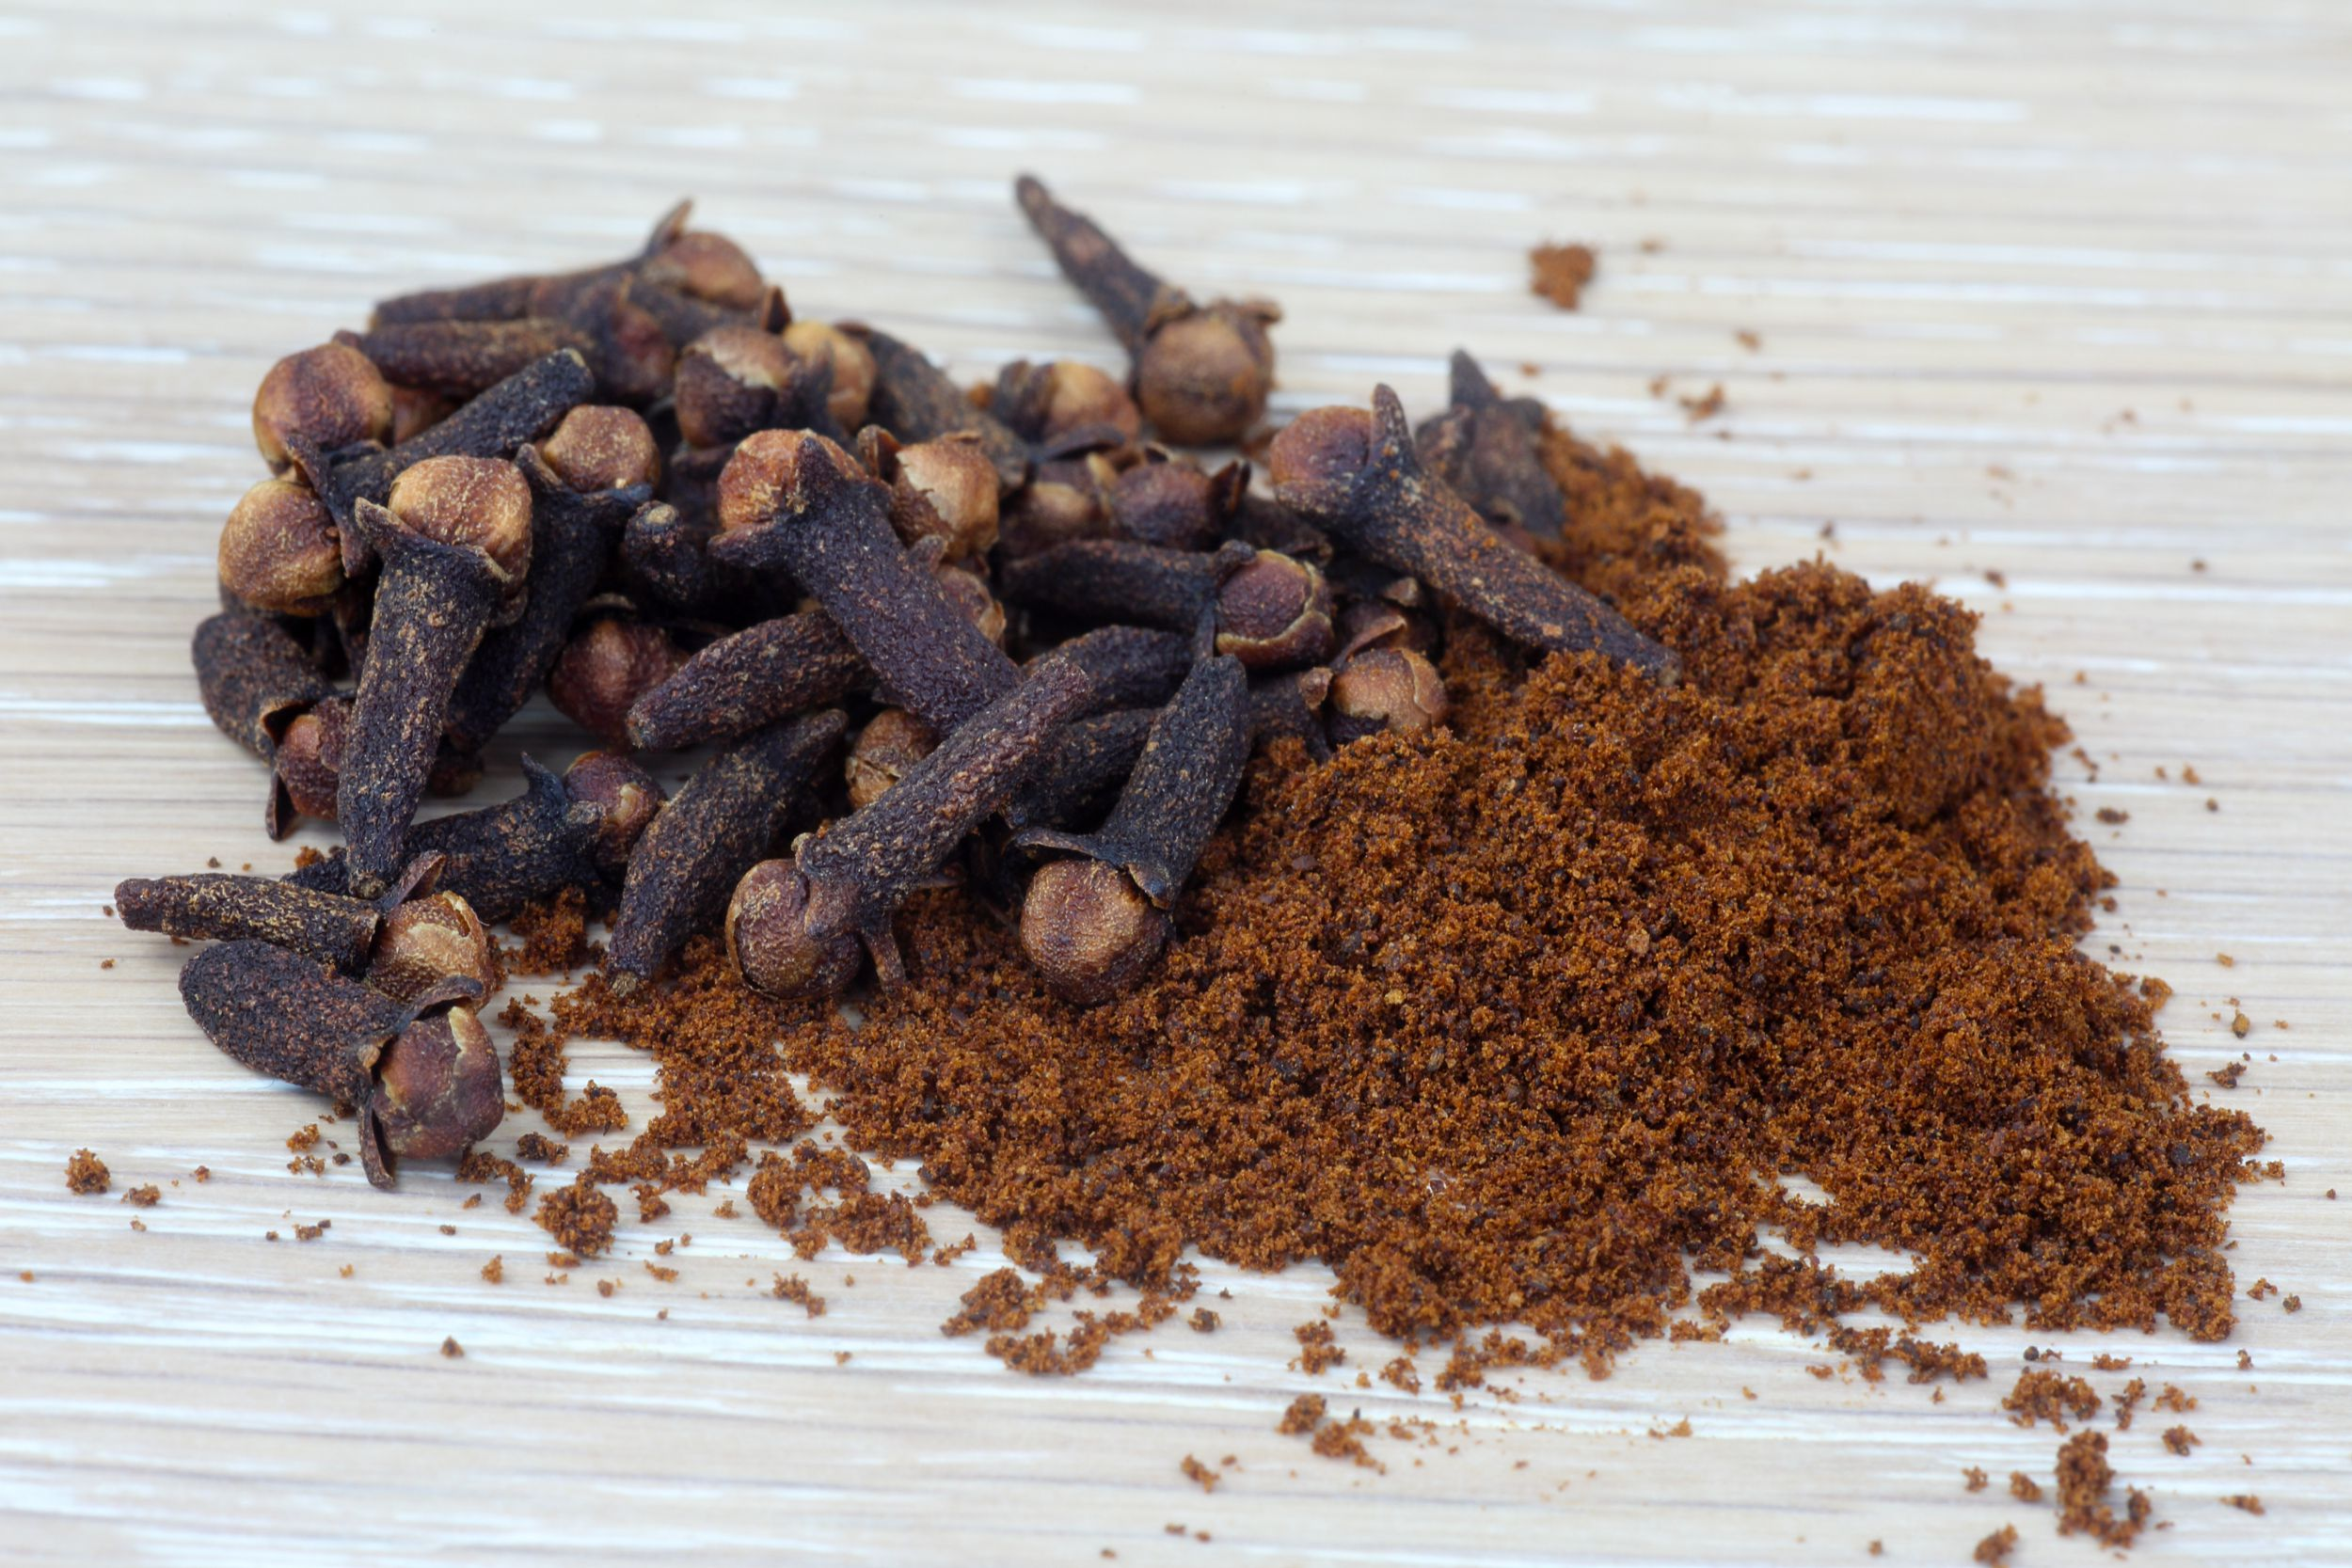 Cloves An Exotic Flavor Best Used With Due Restraint